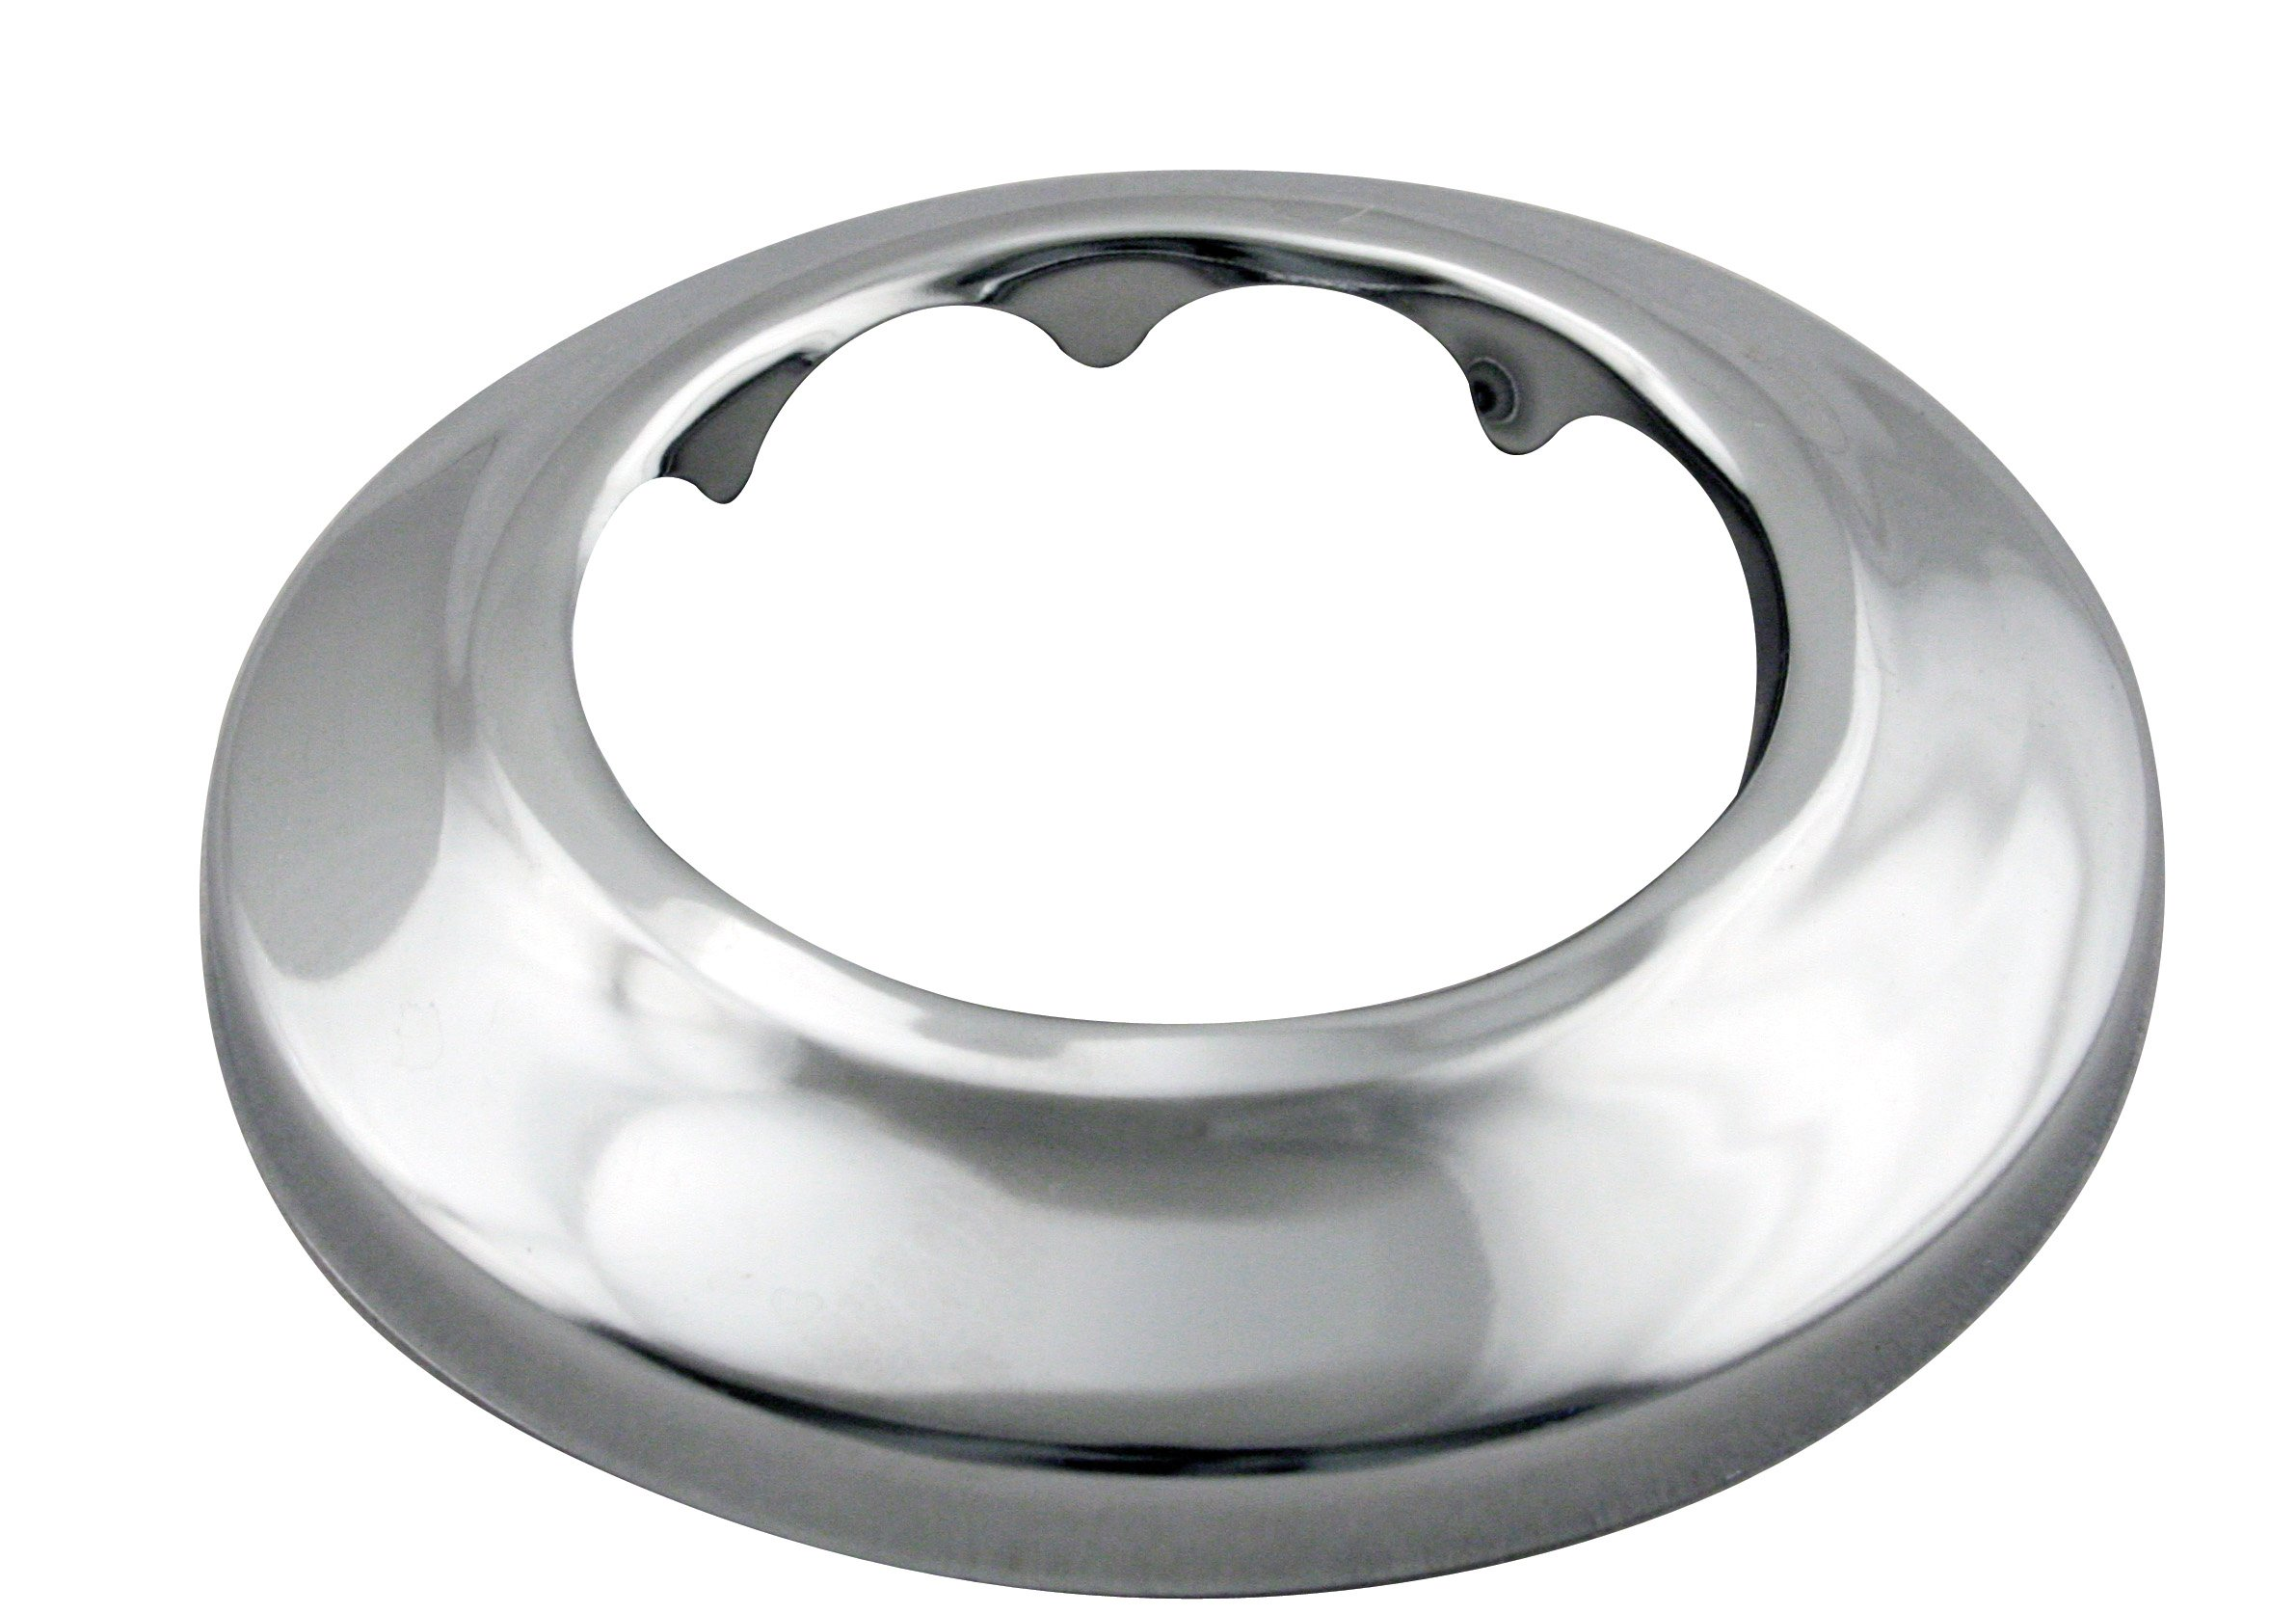 WestBrass D407 Polished Chrome 1-1/2 in. IPS Low Profile Sure Grip Flange